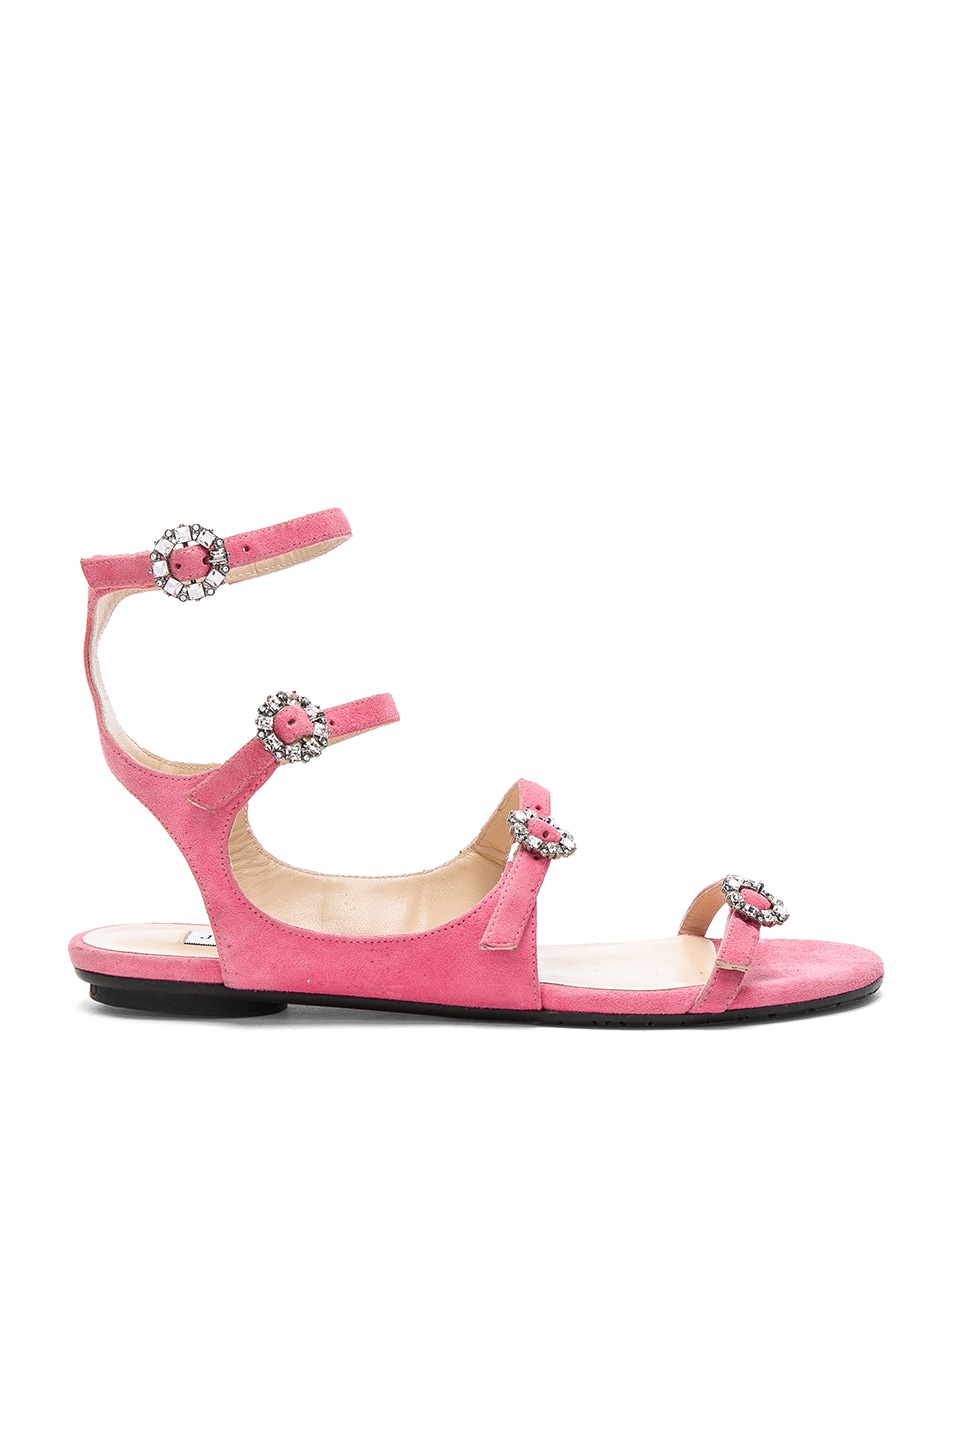 9294b93555fa Image 1 of Jimmy Choo Naia Suede Sandals in Flamingo   Crystal